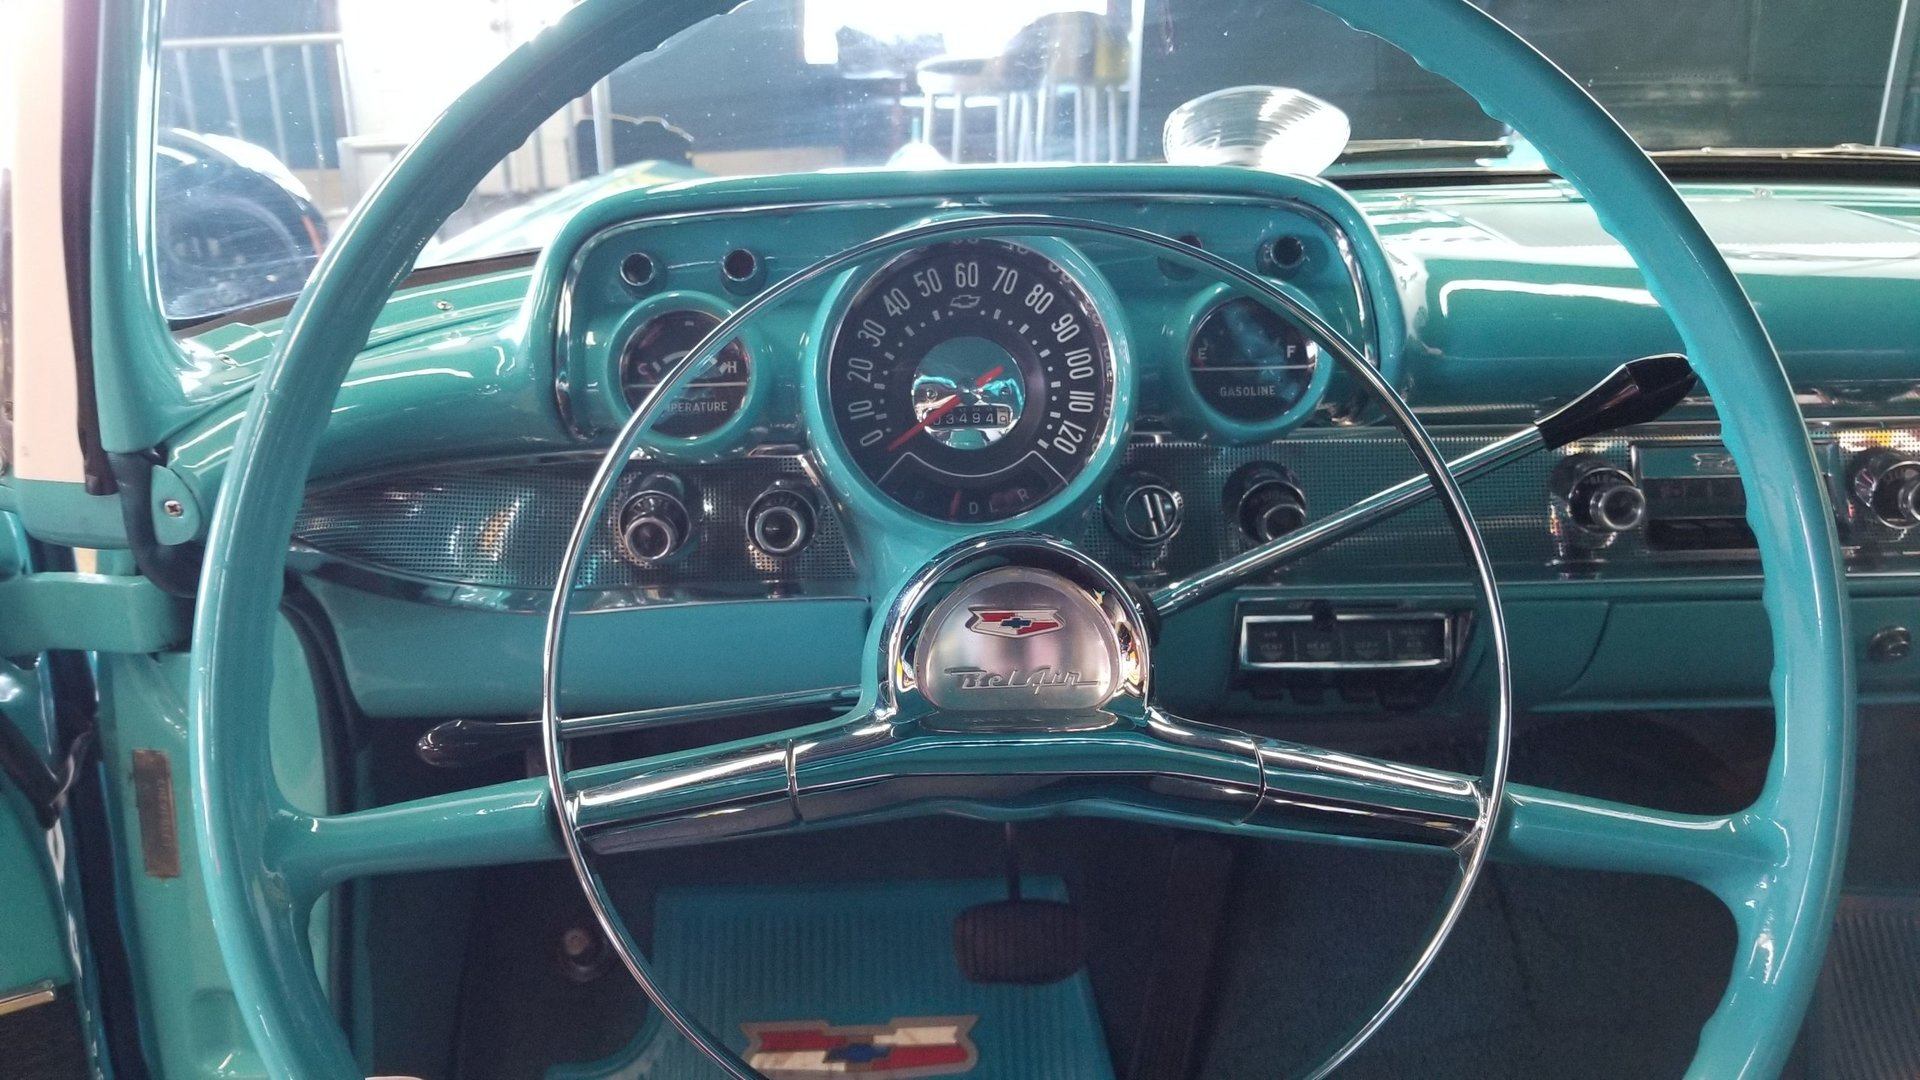 33917a046ae6f_hd_1957-chevrolet-bel-air